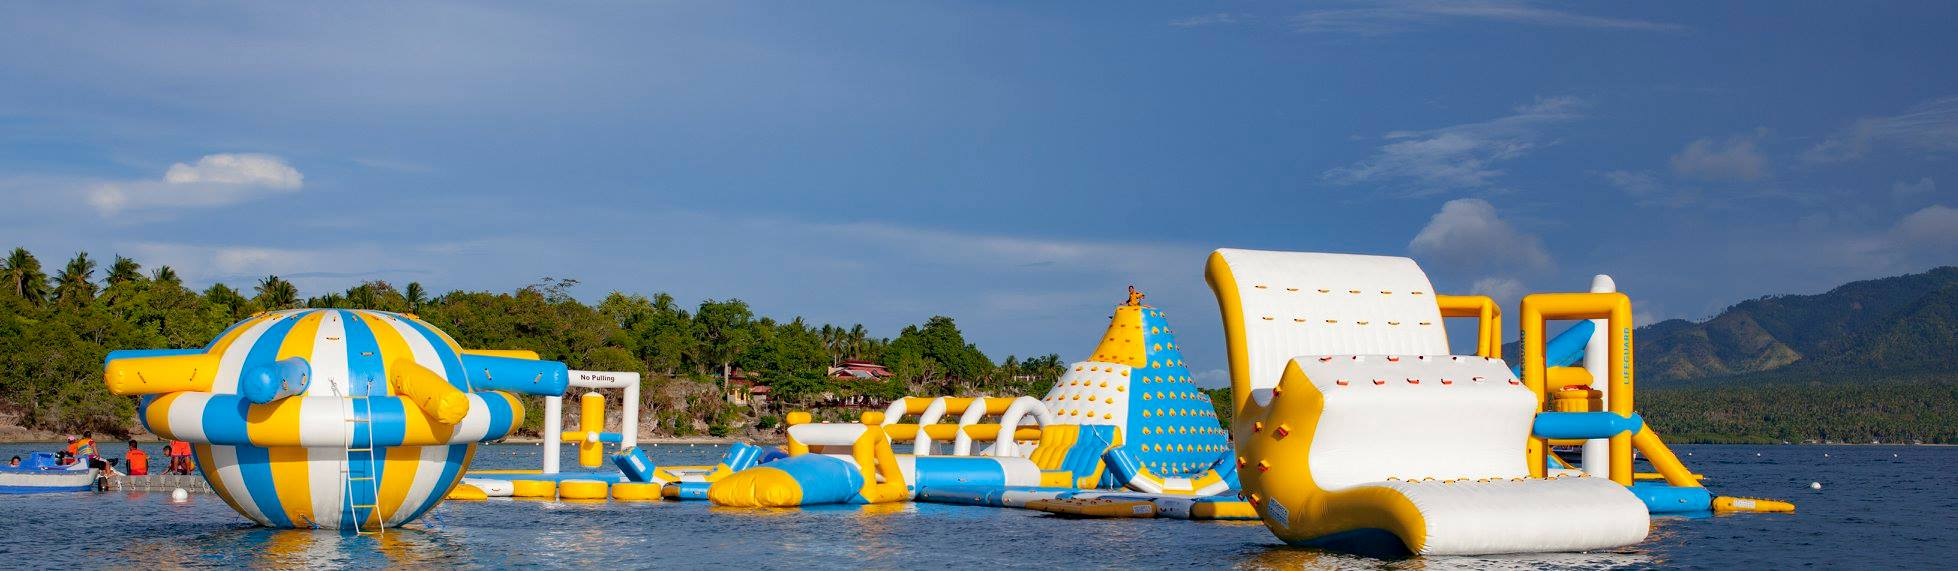 Blue Bless Resort; Adventure Island; Inflatable Island